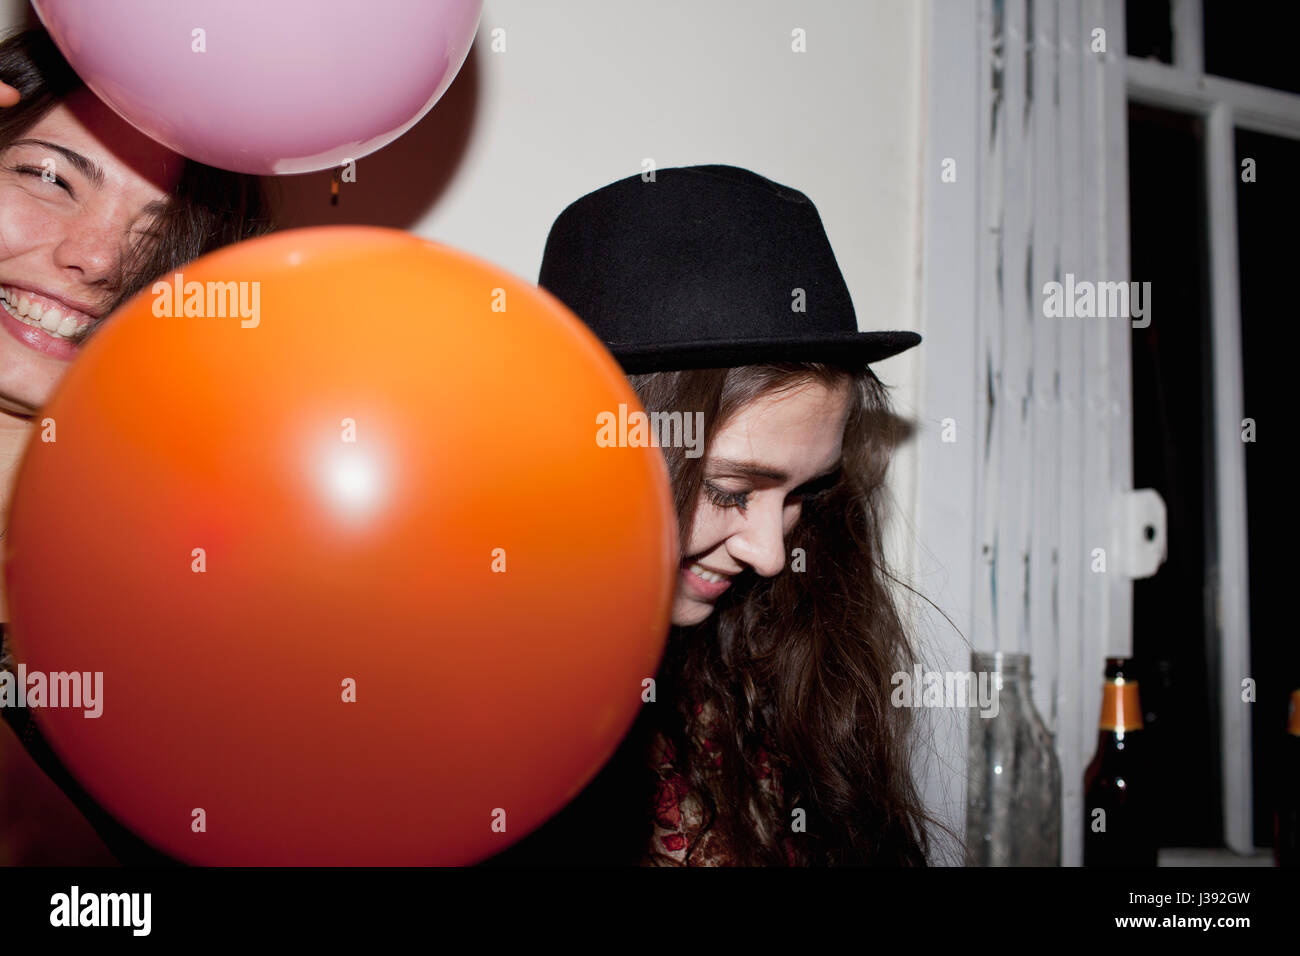 Friends hanging out at a party Photo Stock